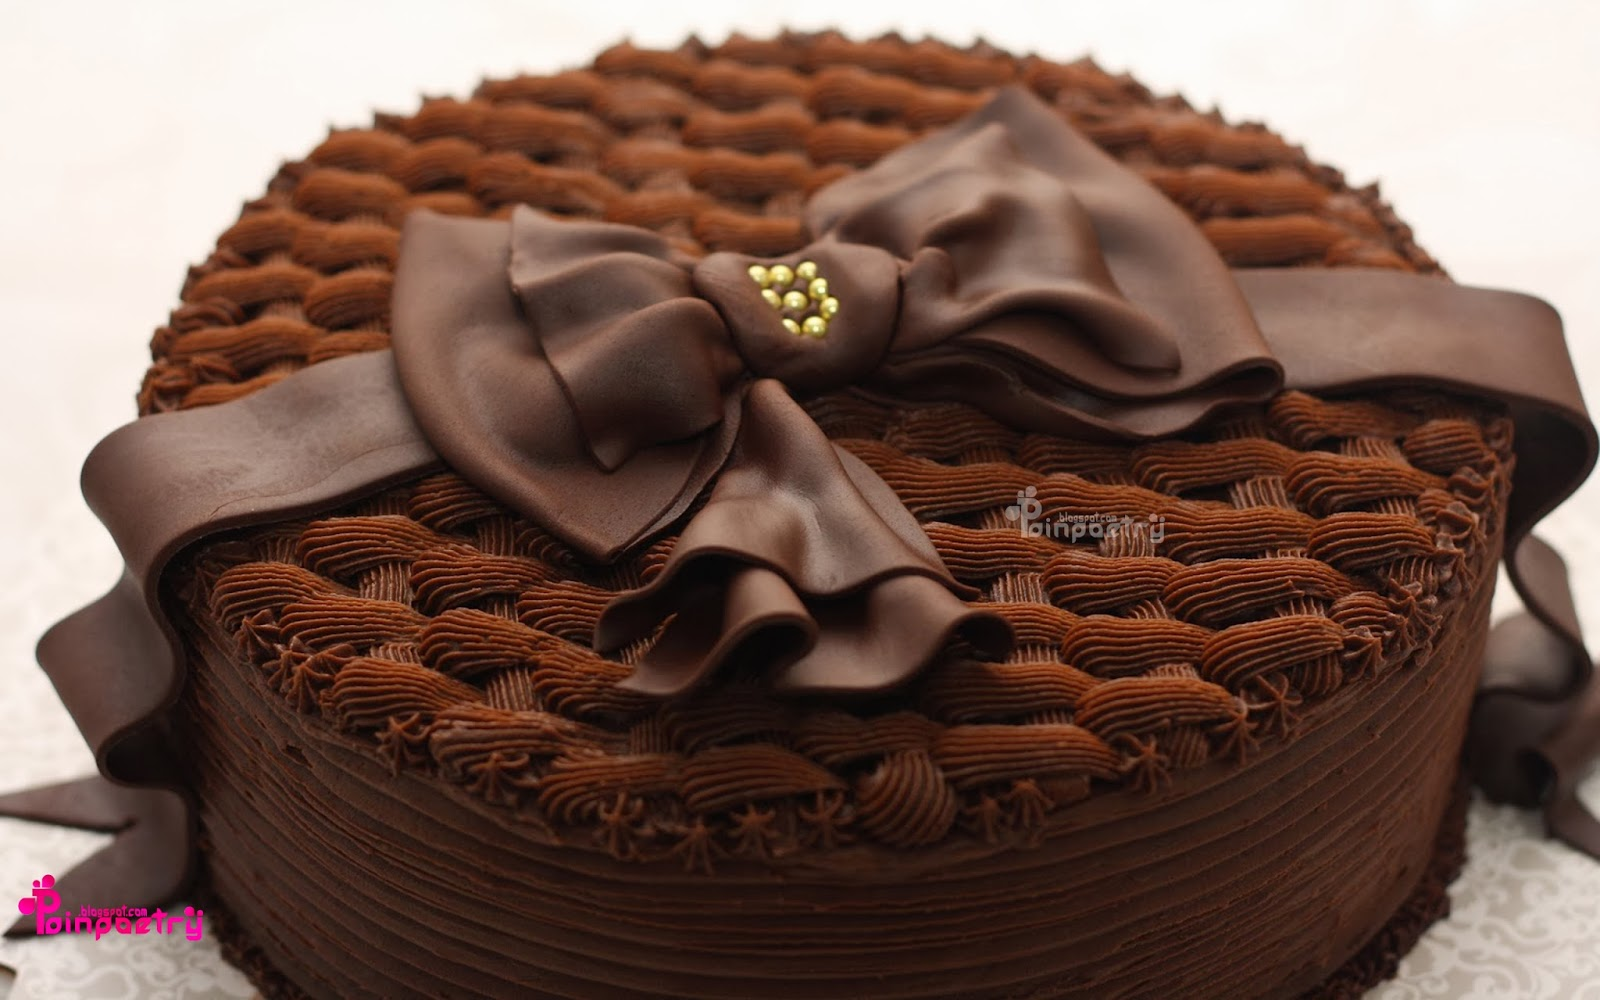 Happy-Birthday-Chocolate-Cake-Wishes-Wallpaper-Image-HD-Wide